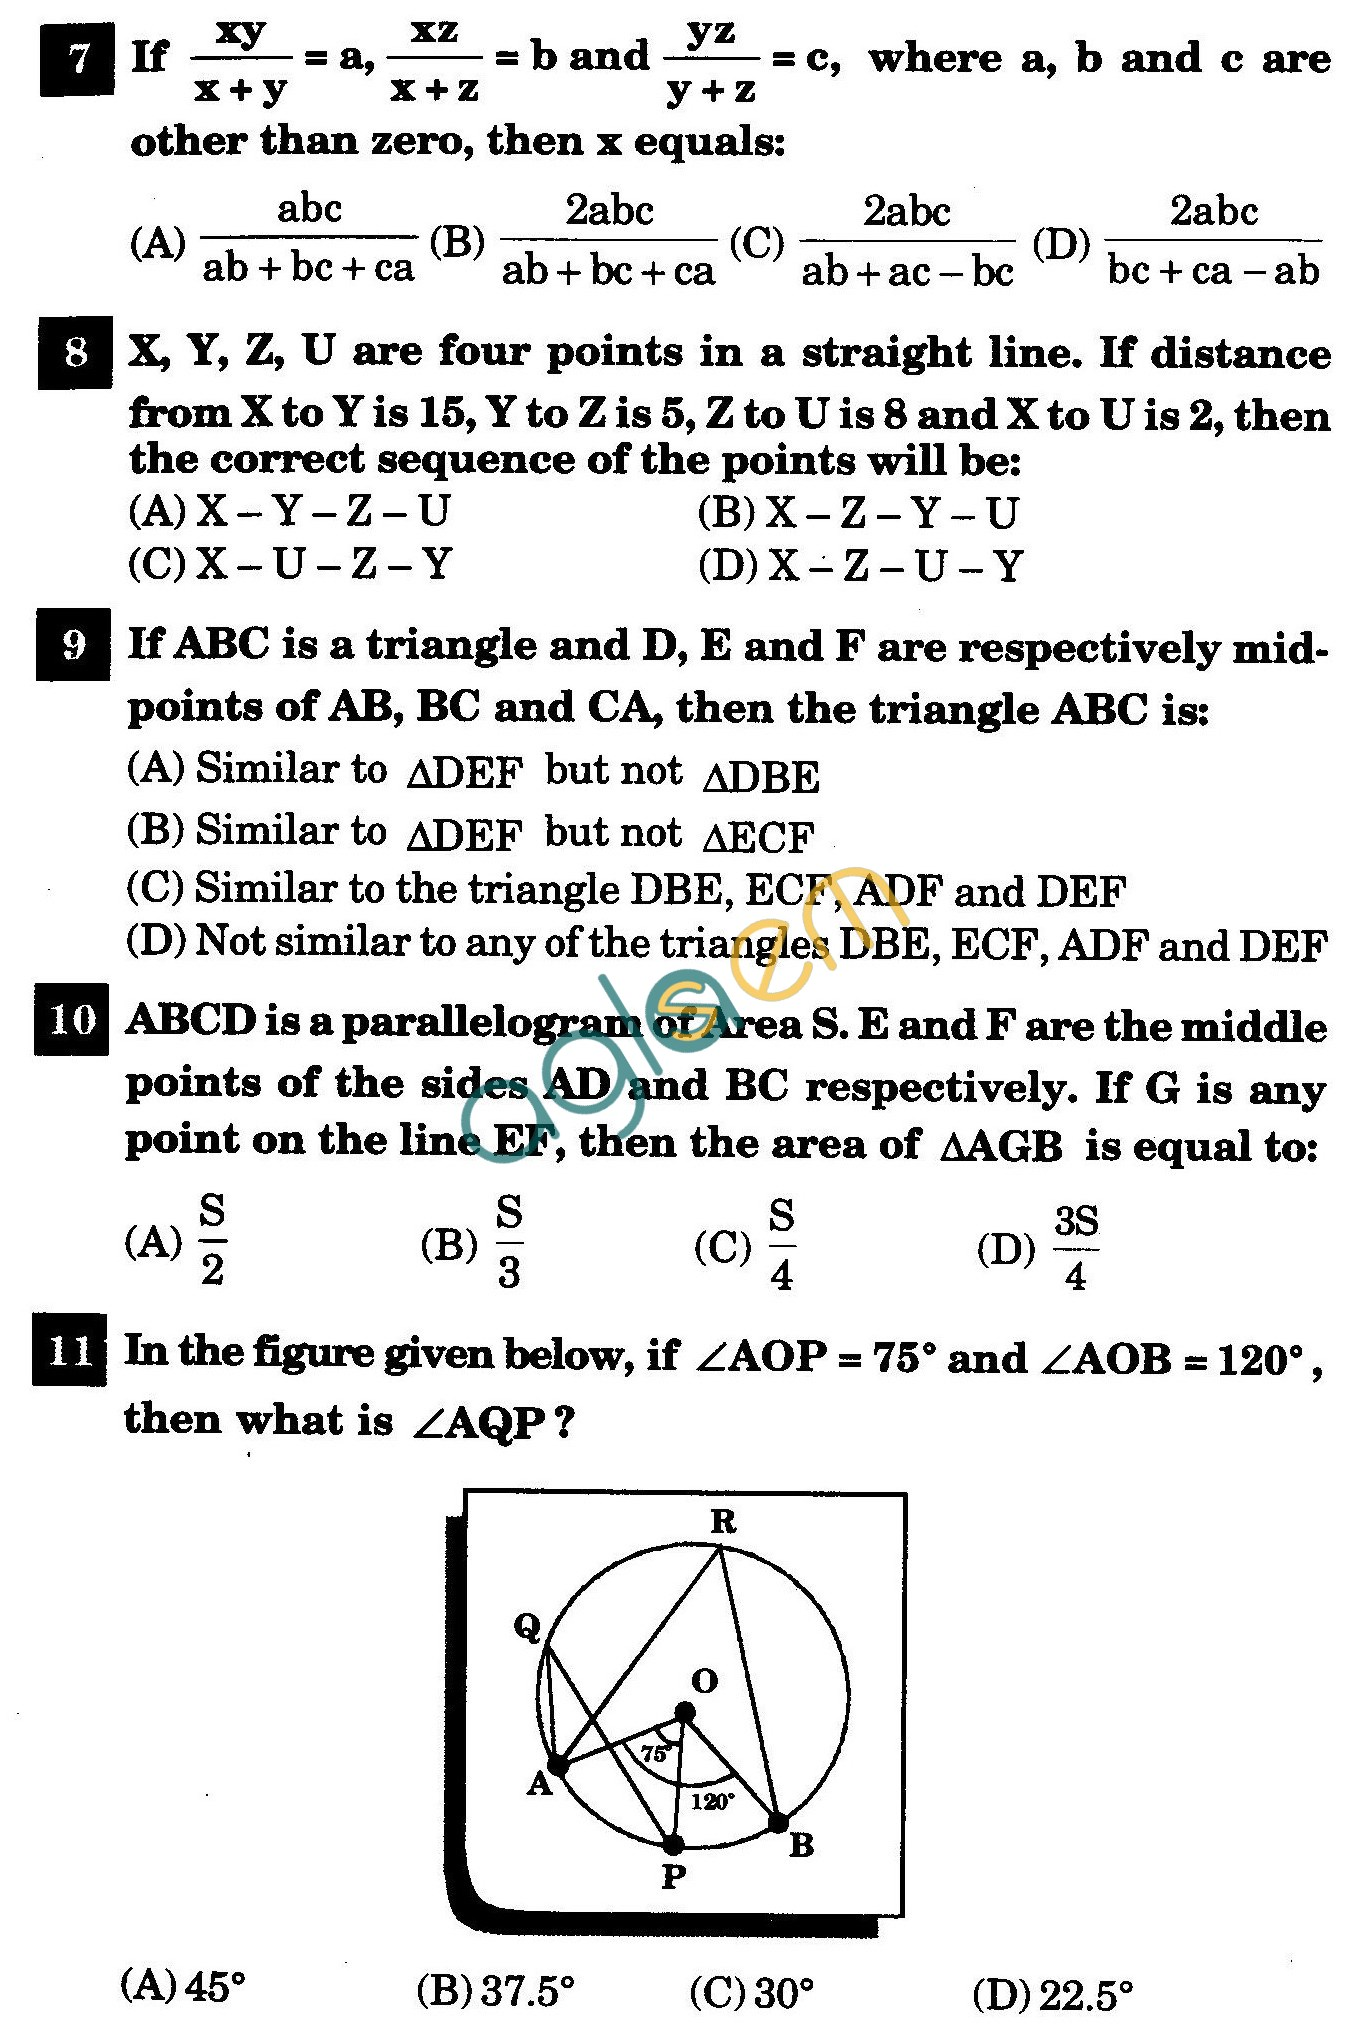 NSTSE 2011 Class IX Question Paper with Answers - Mathematics